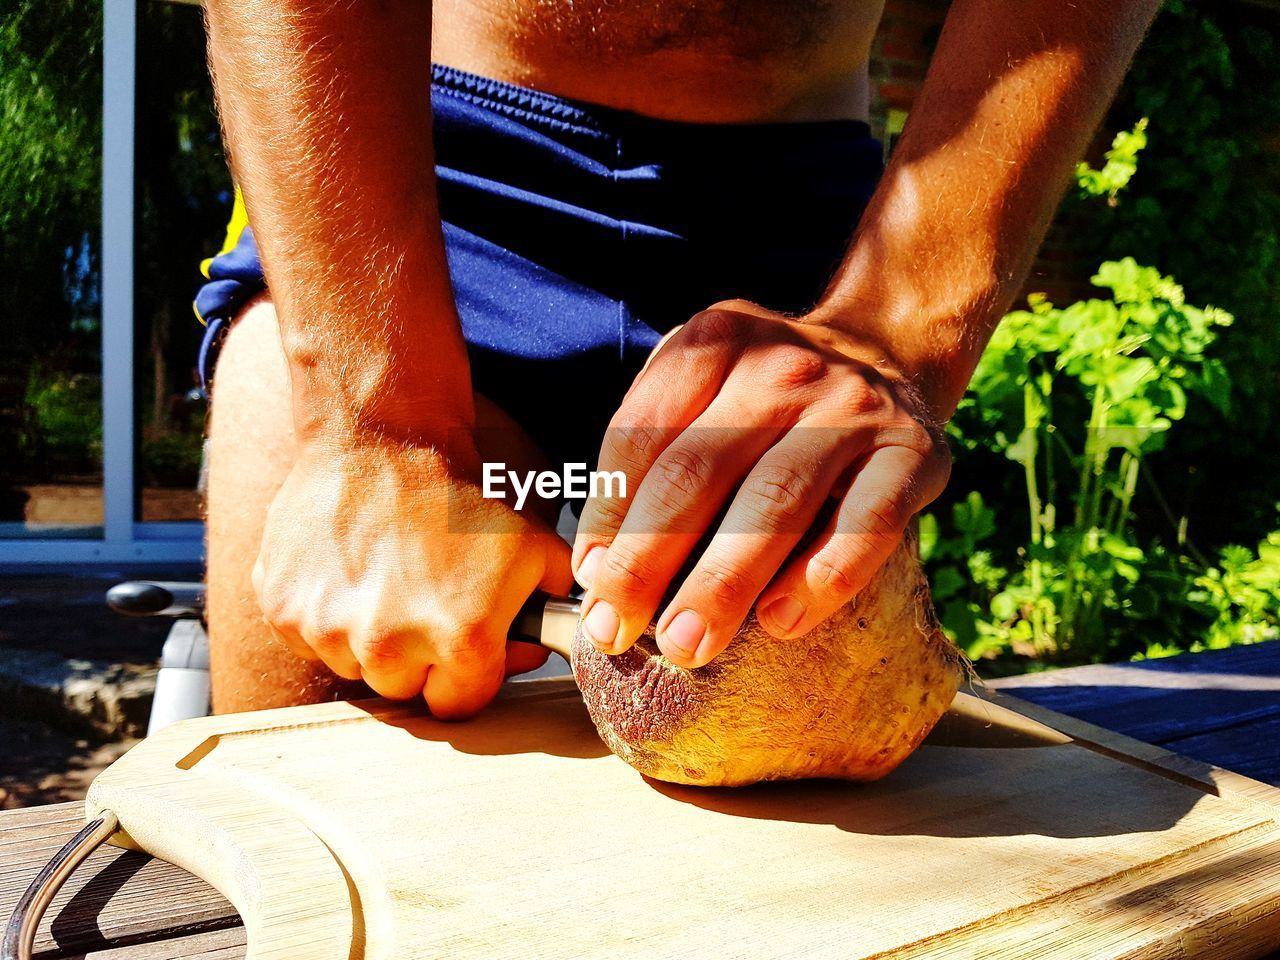 Midsection of men cutting fruit